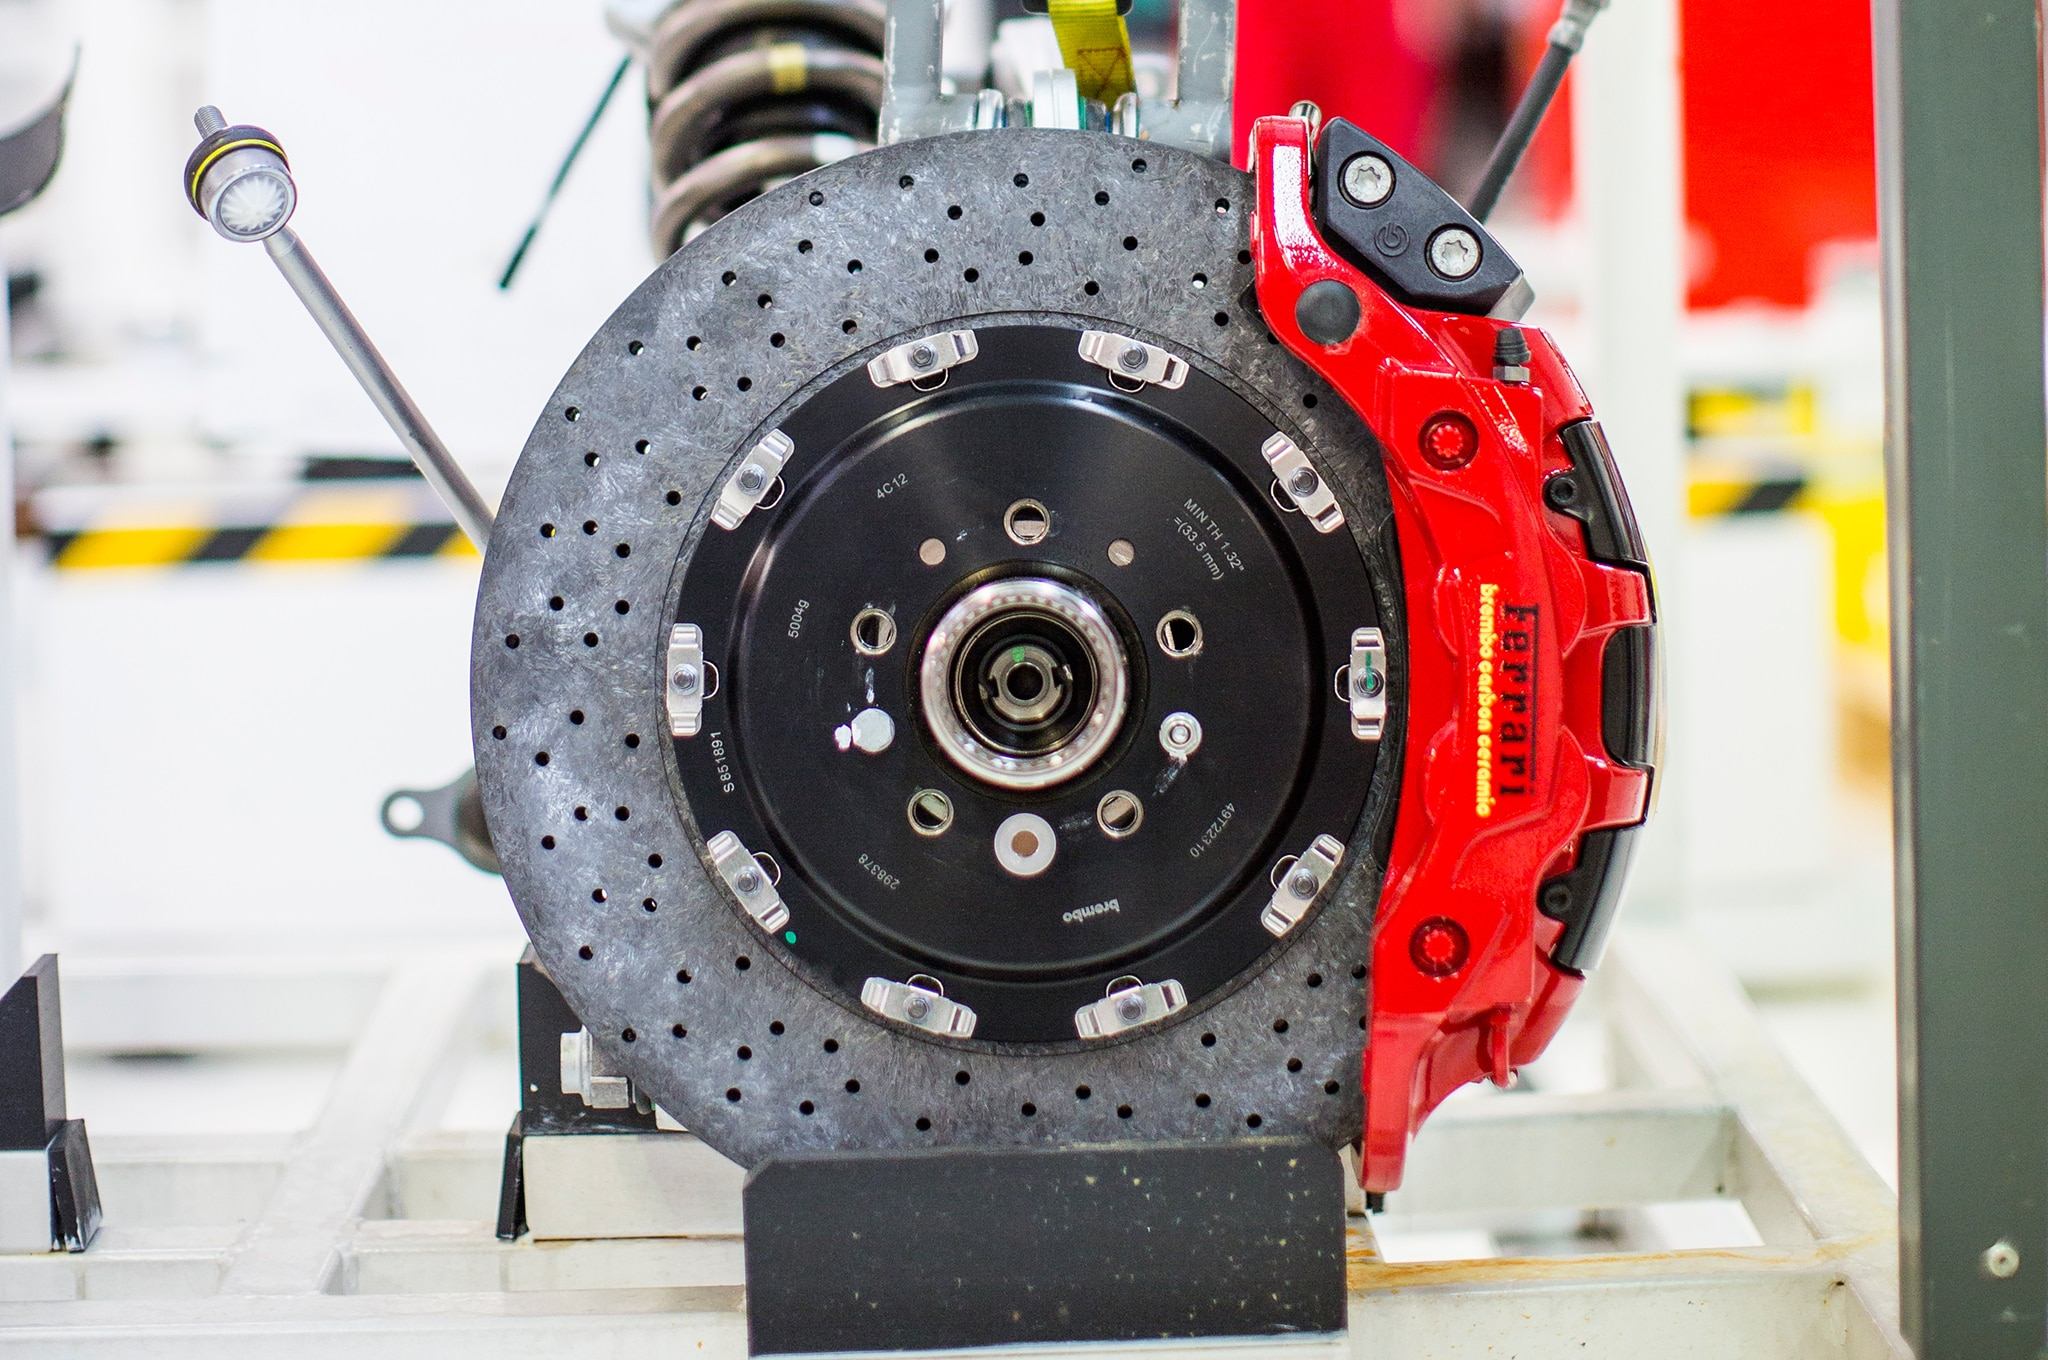 Giant carbon-ceramic brake rotors by Brembo are standard.